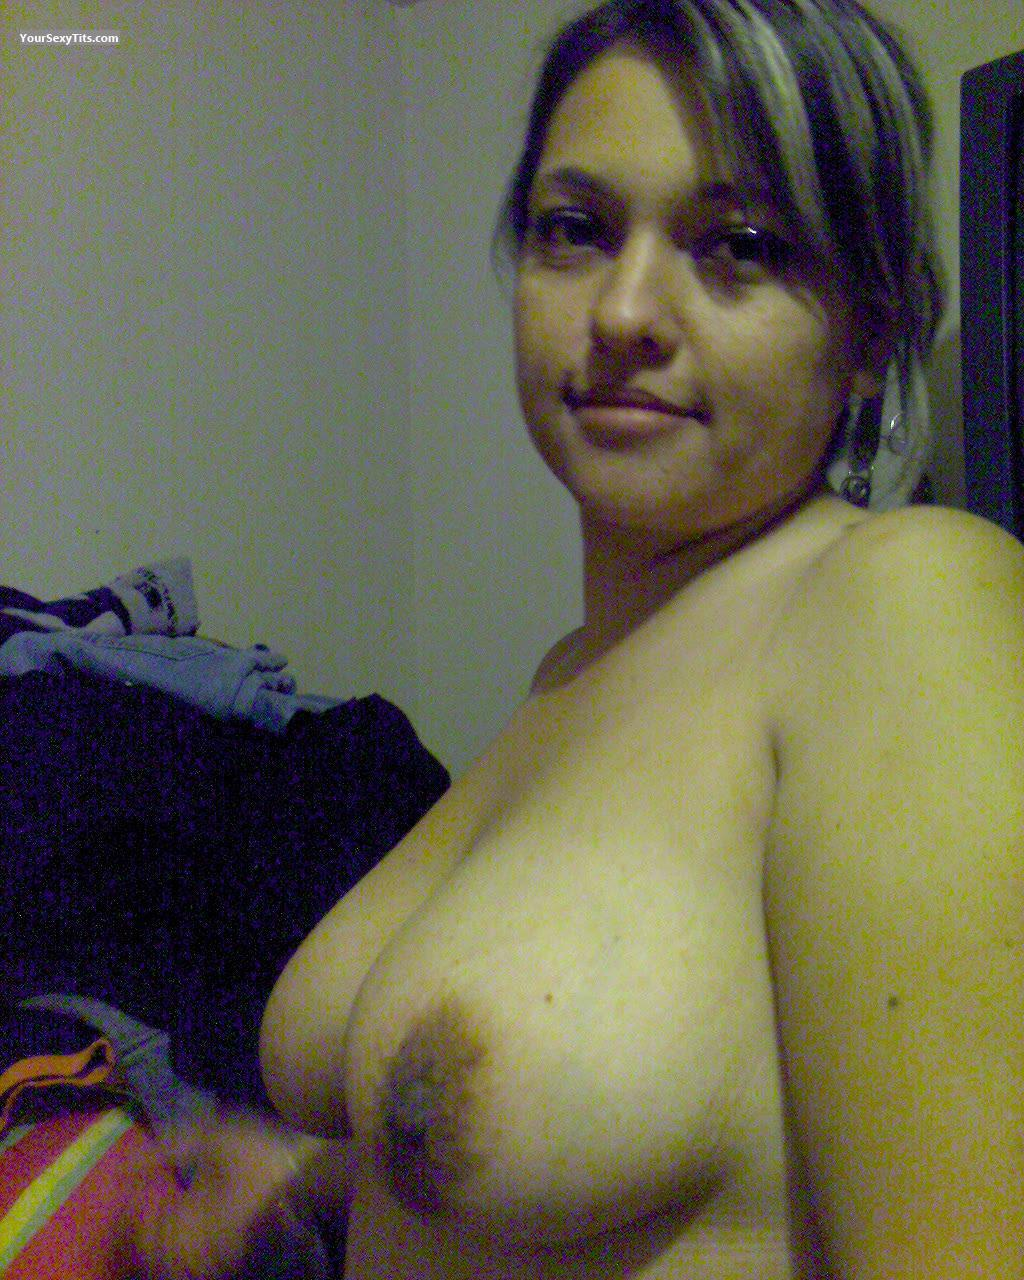 Bang my wife big tits